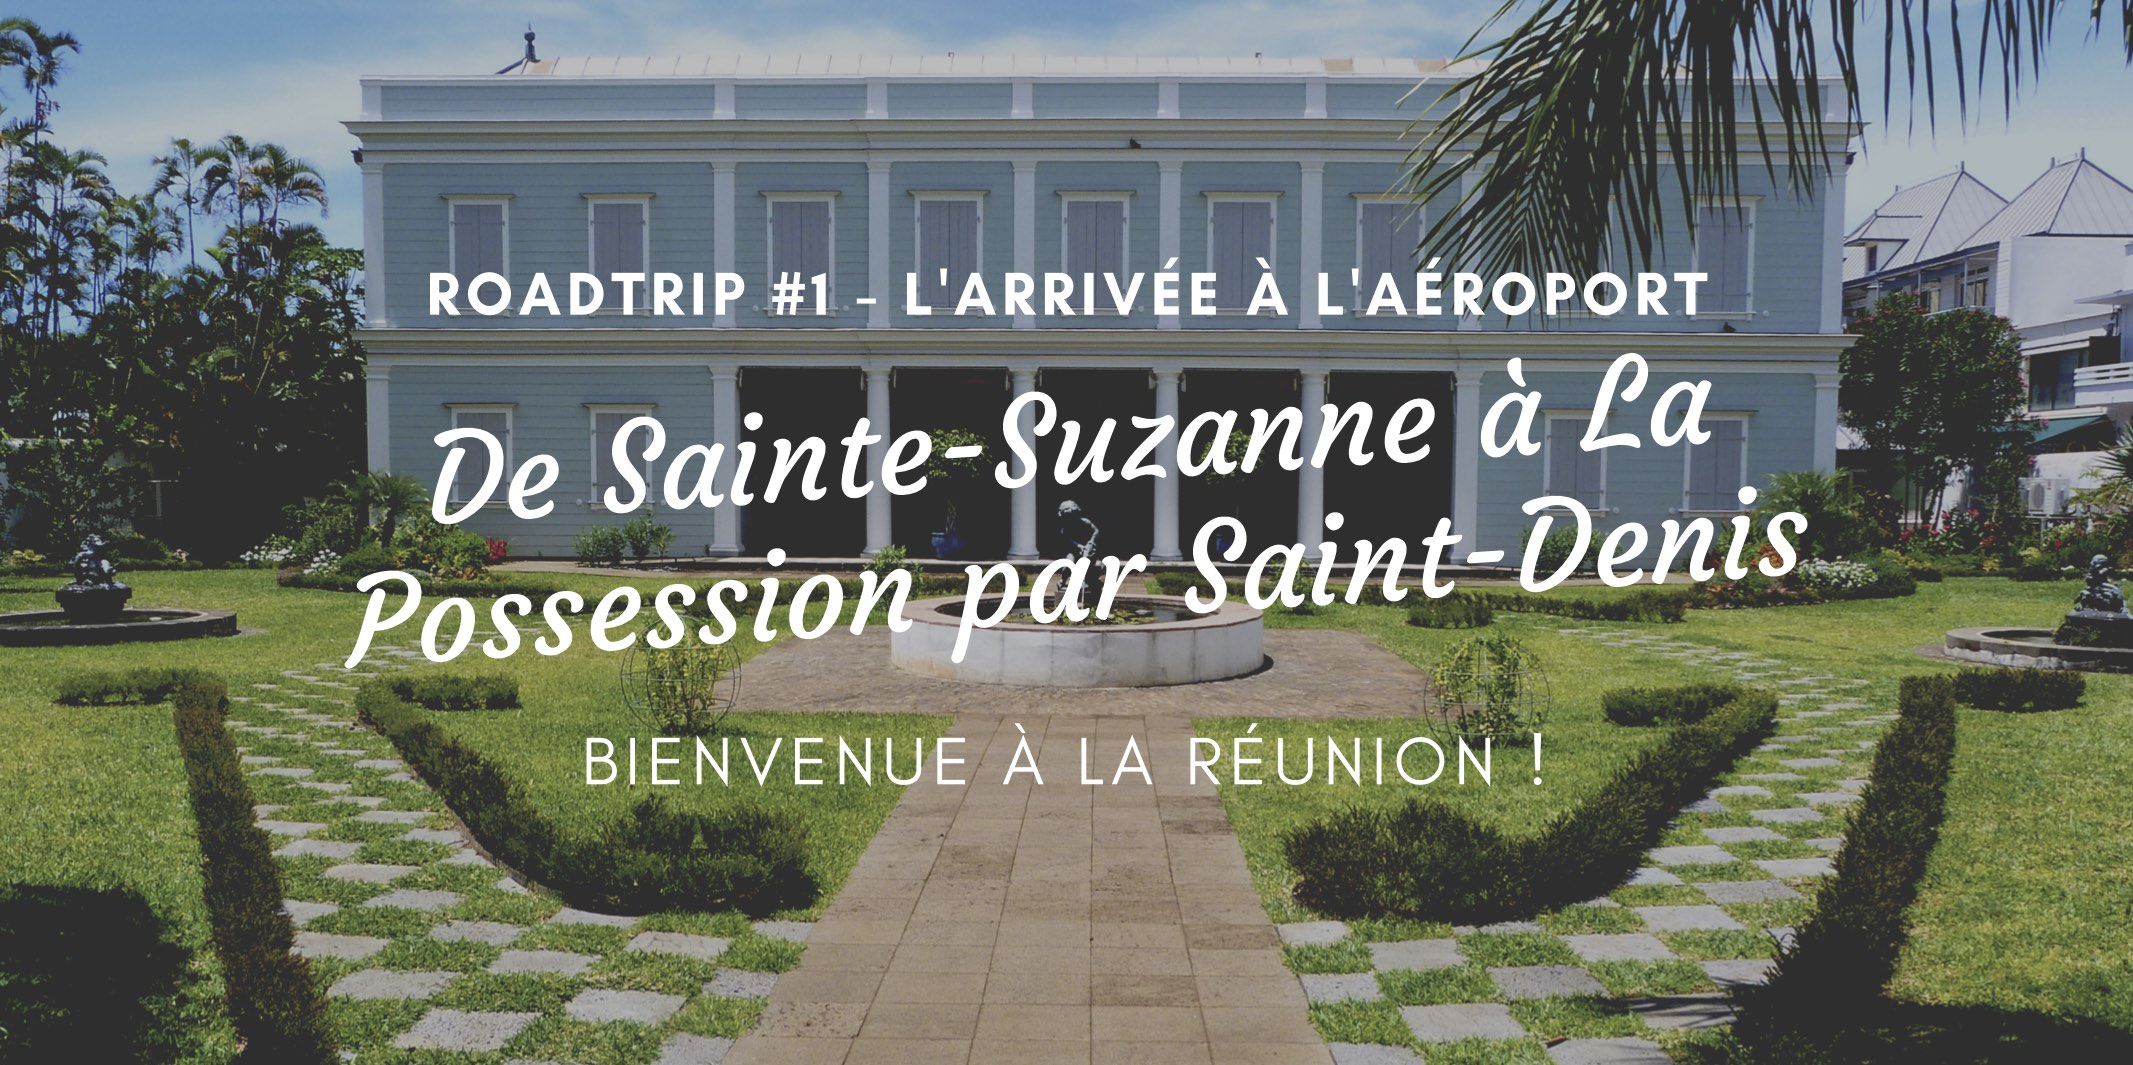 Roadtrip à La Réunion : de Sainte-Suzanne à La Possession par Saint-Denis